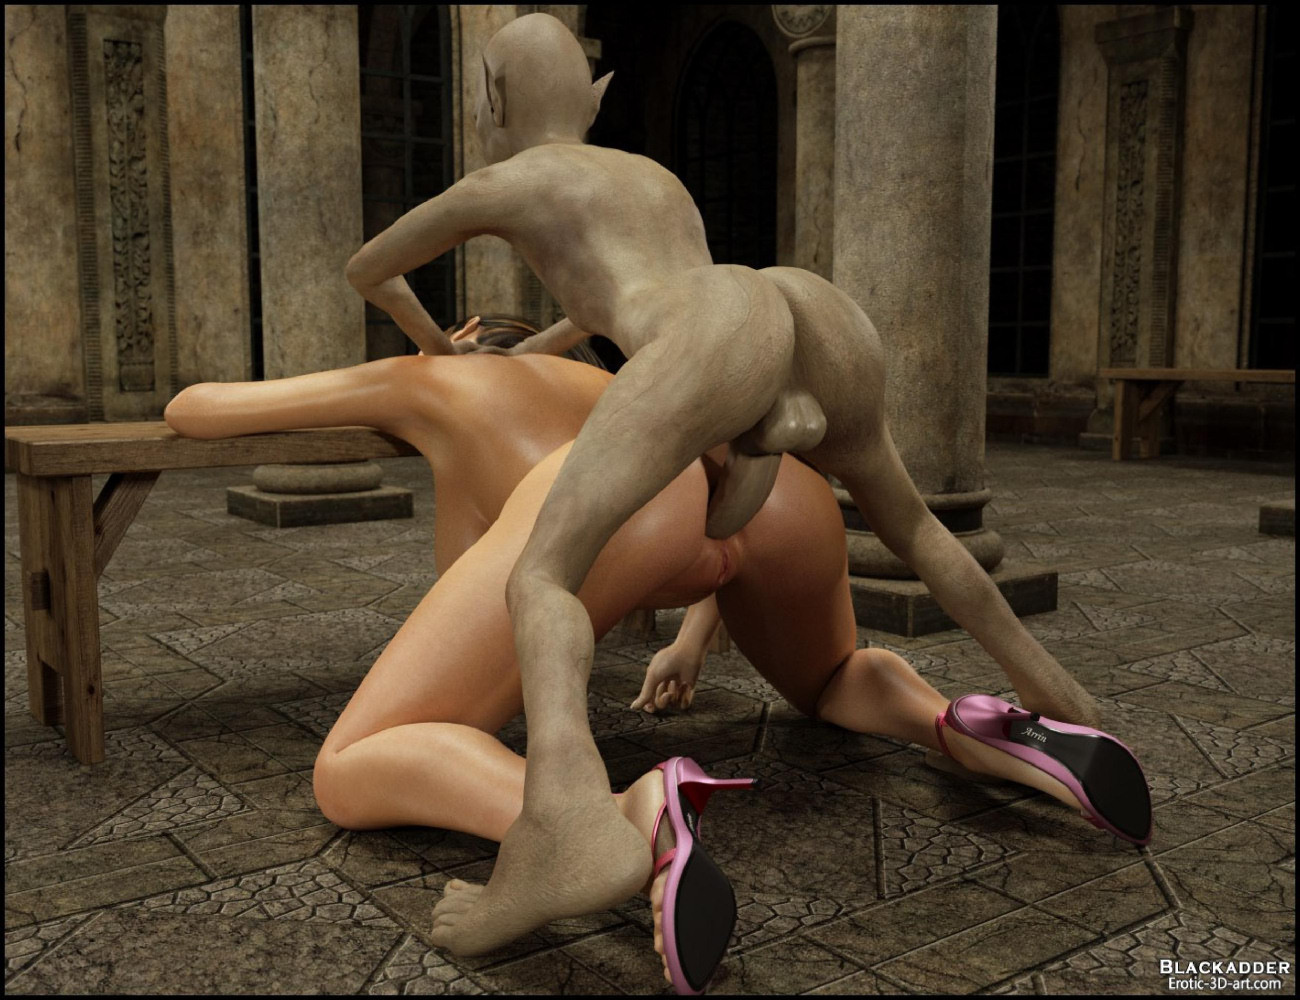 The monsters sex 3d download 3gp porno comic